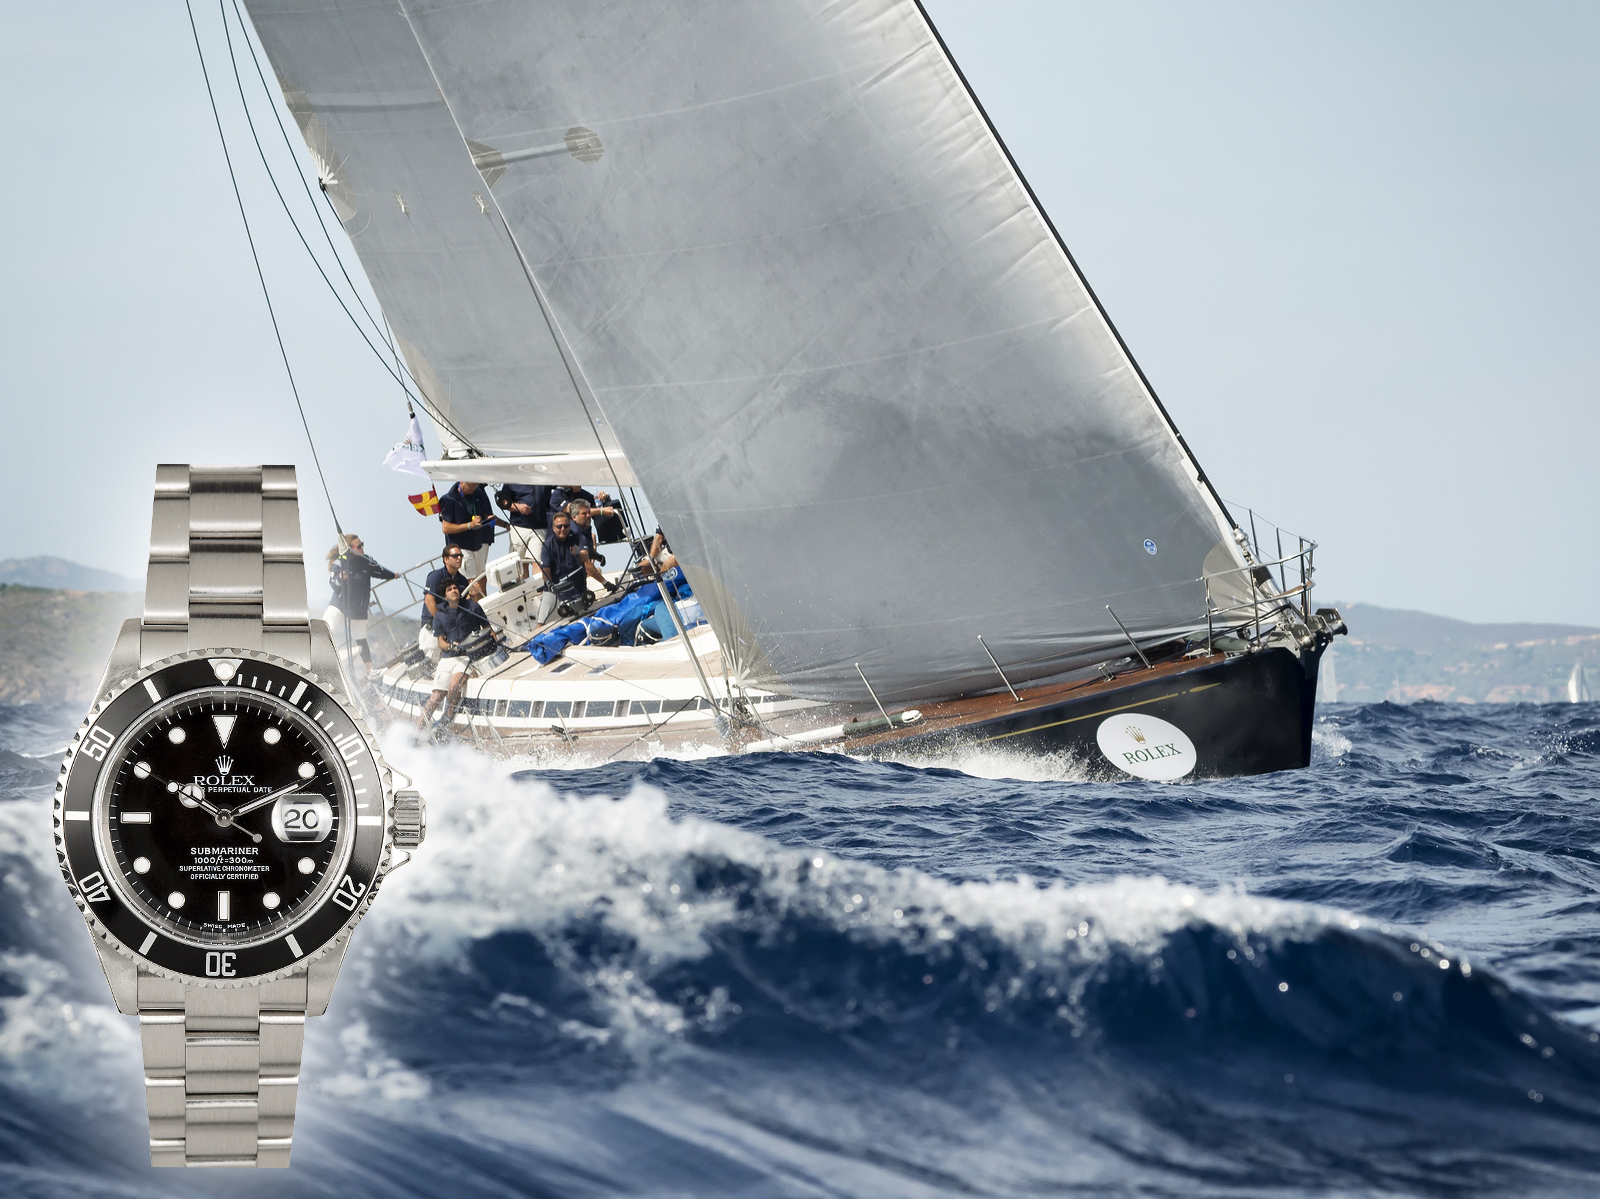 Rolex Sailboat Race